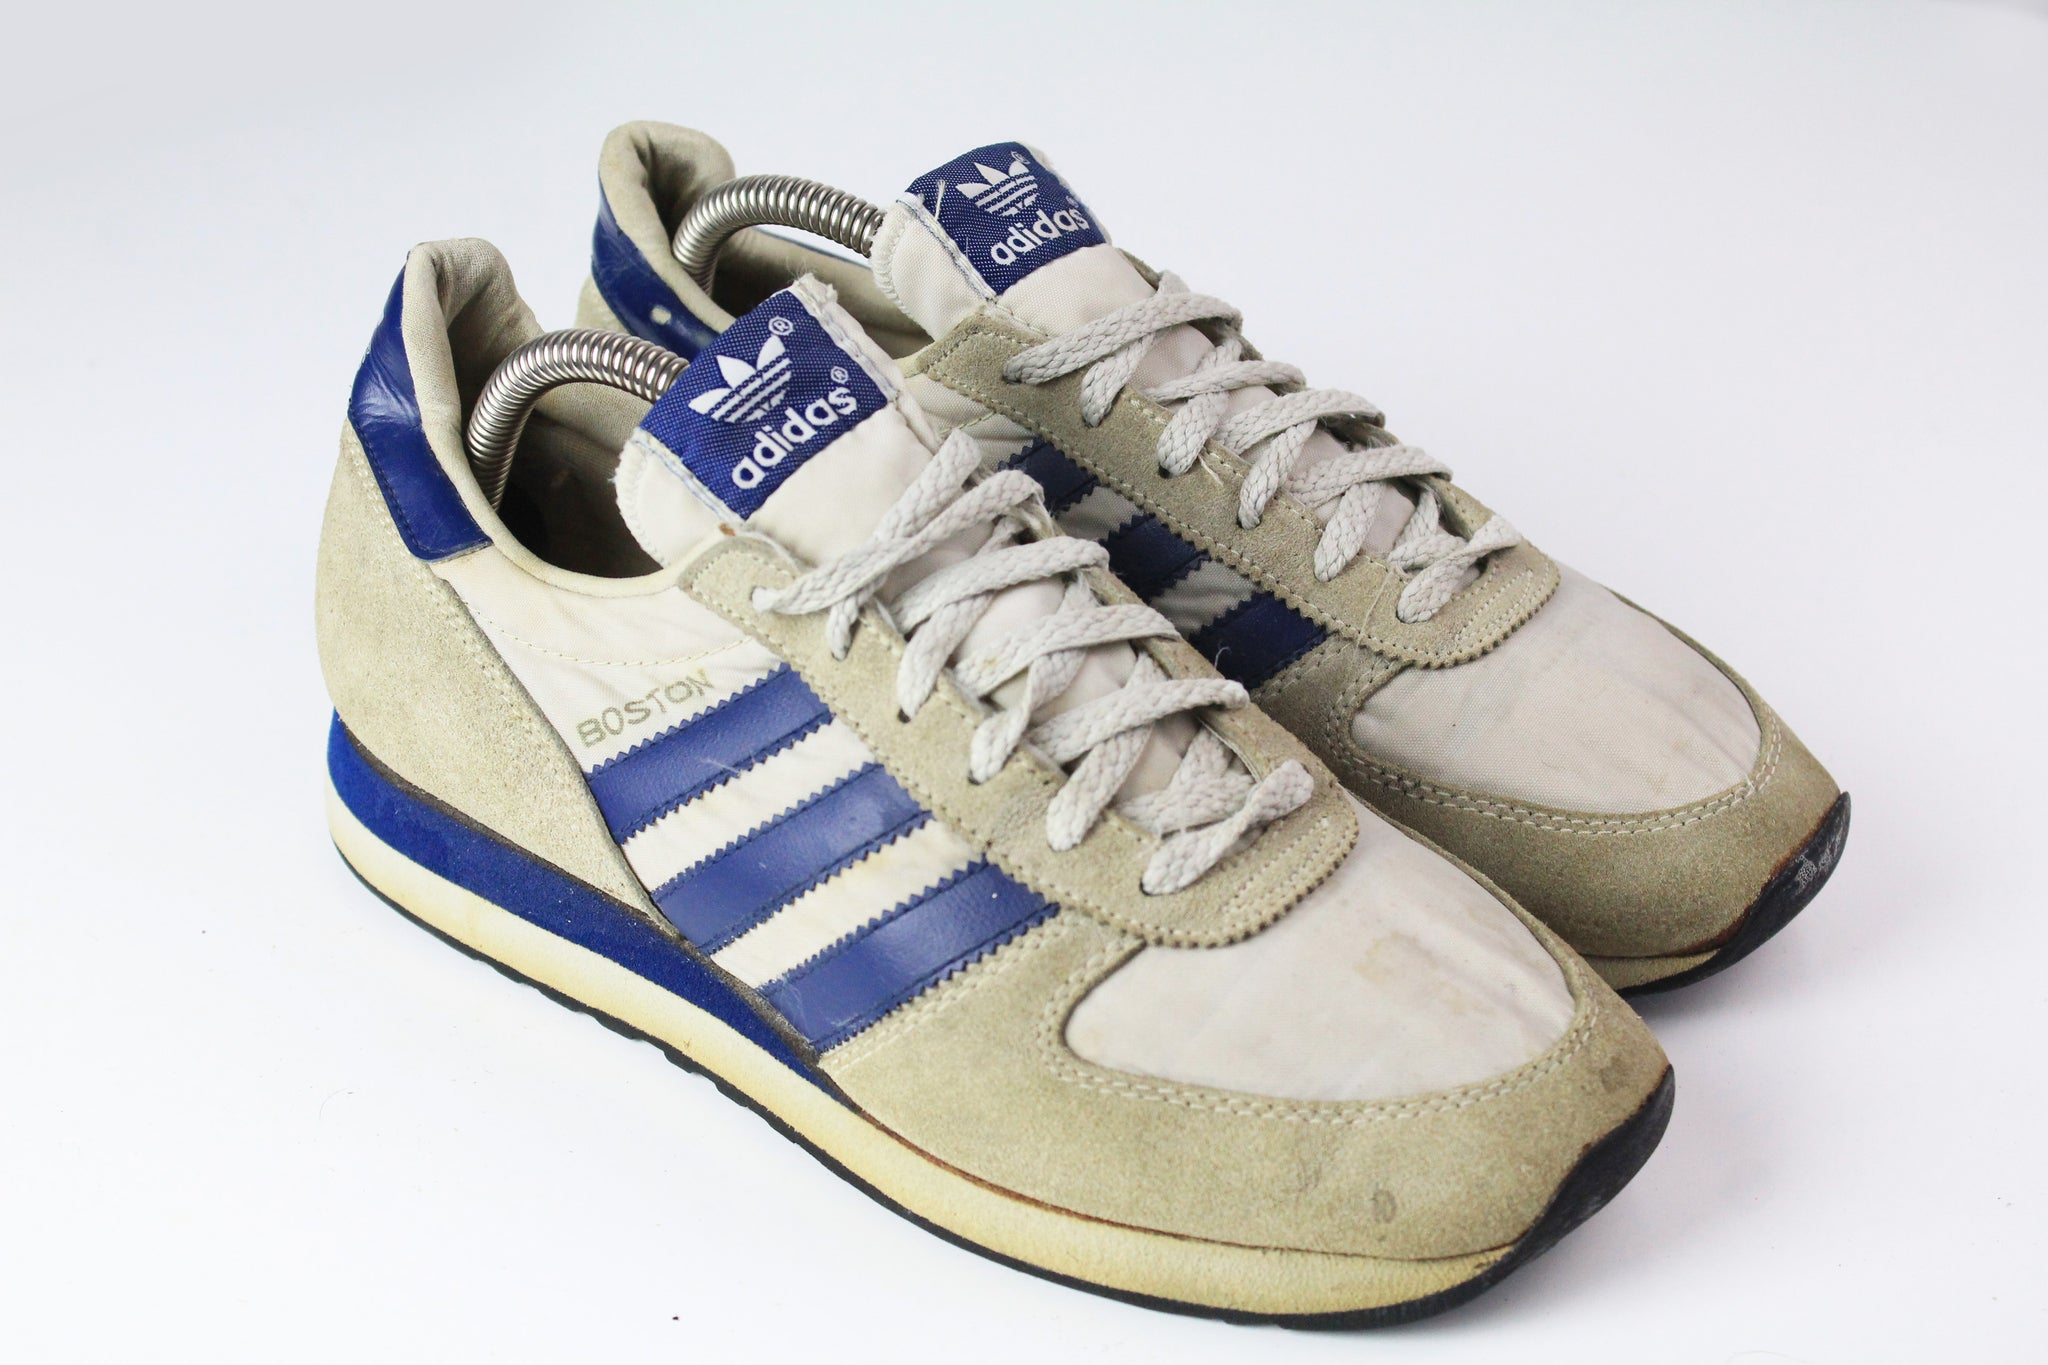 Vintage Adidas Boston Sneakers US 7 made in Taiwan 80s gray blue city series